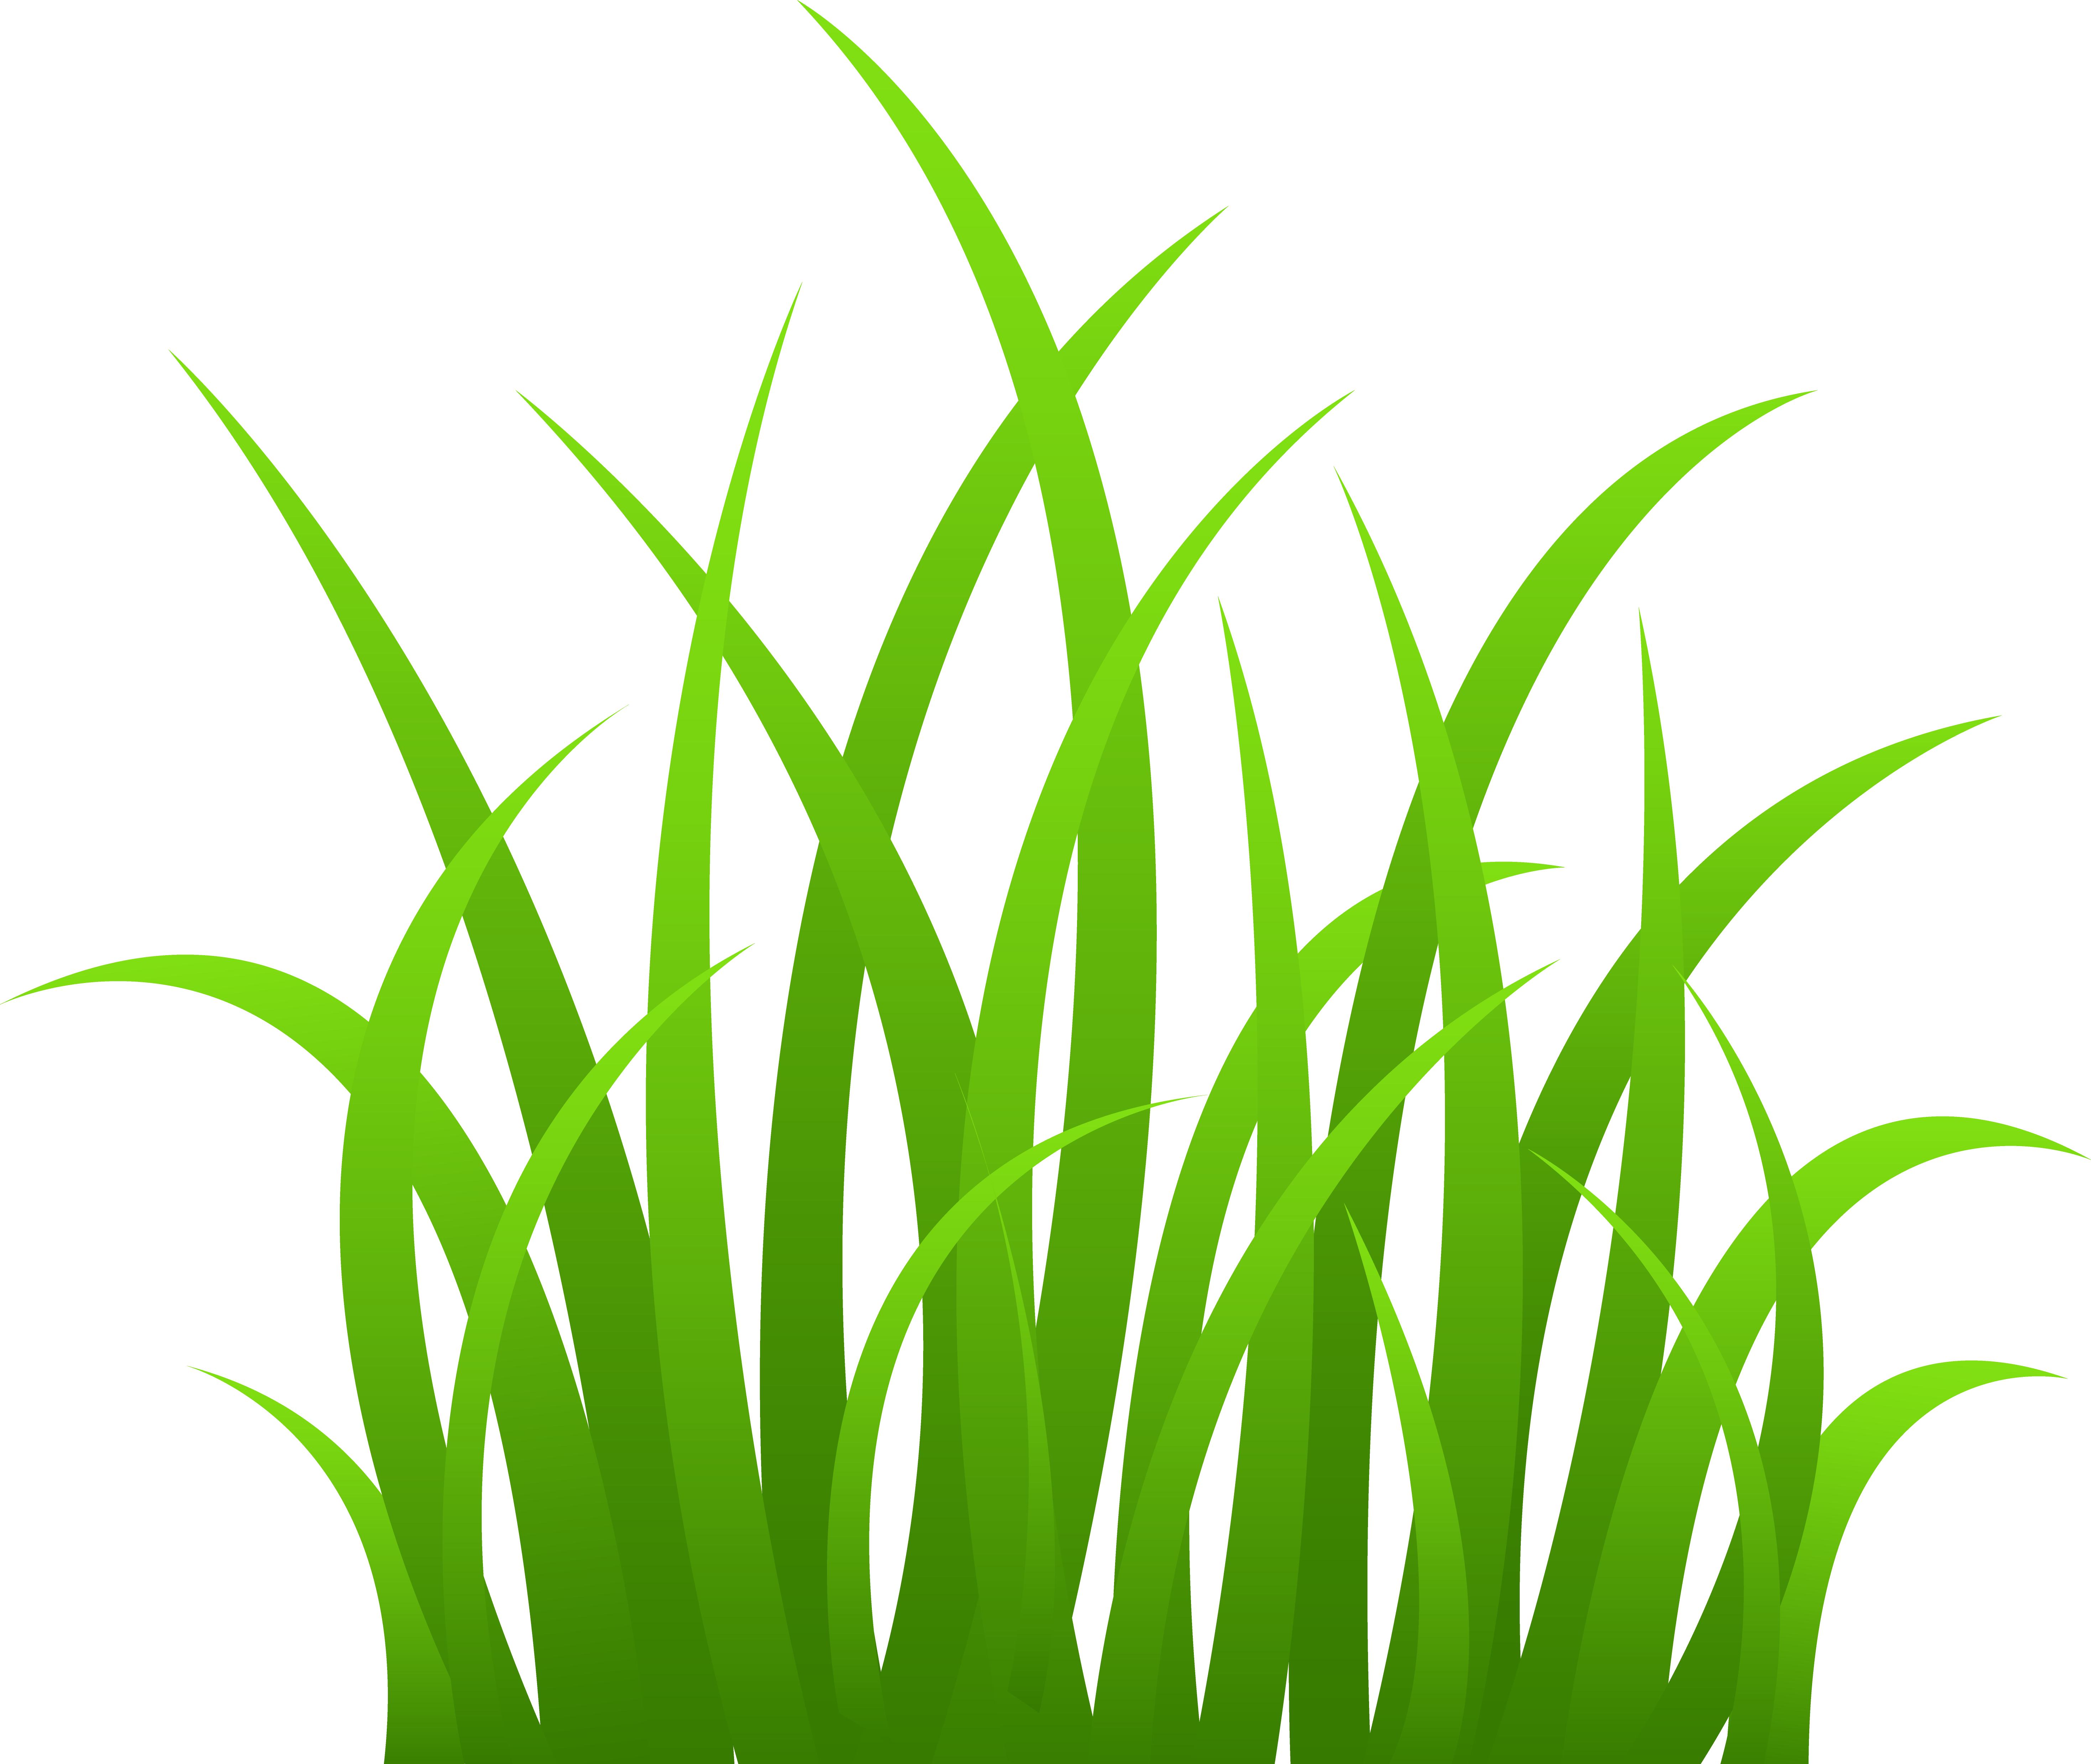 Sketch clipart grass Grass Clip Download Panda Pictures